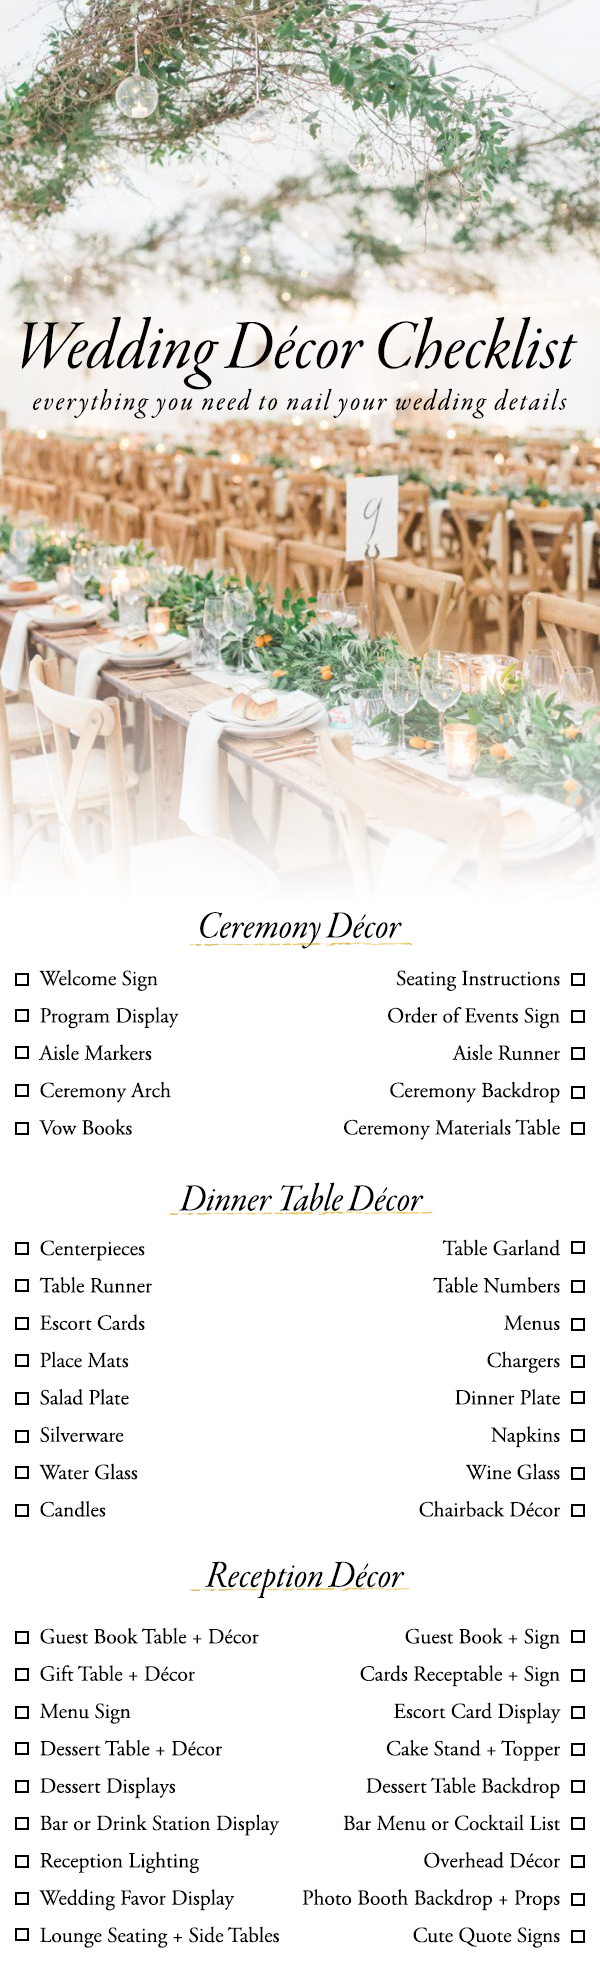 Books Wedding Decor Use This Wedding Dcor Checklist To Help You Nail Every Detail